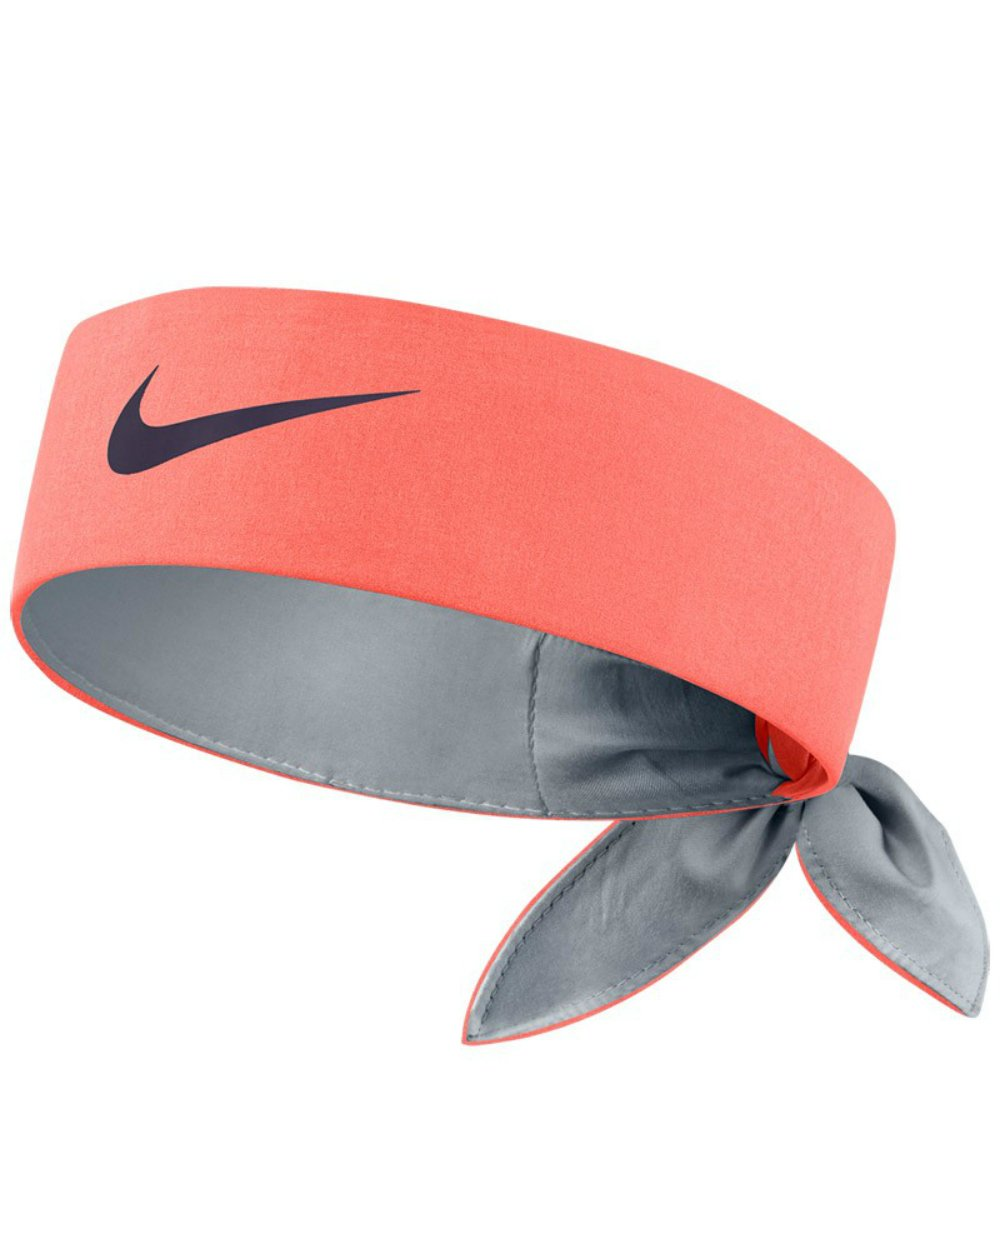 Nike Head Tie Headband (Bright Mango/Black)